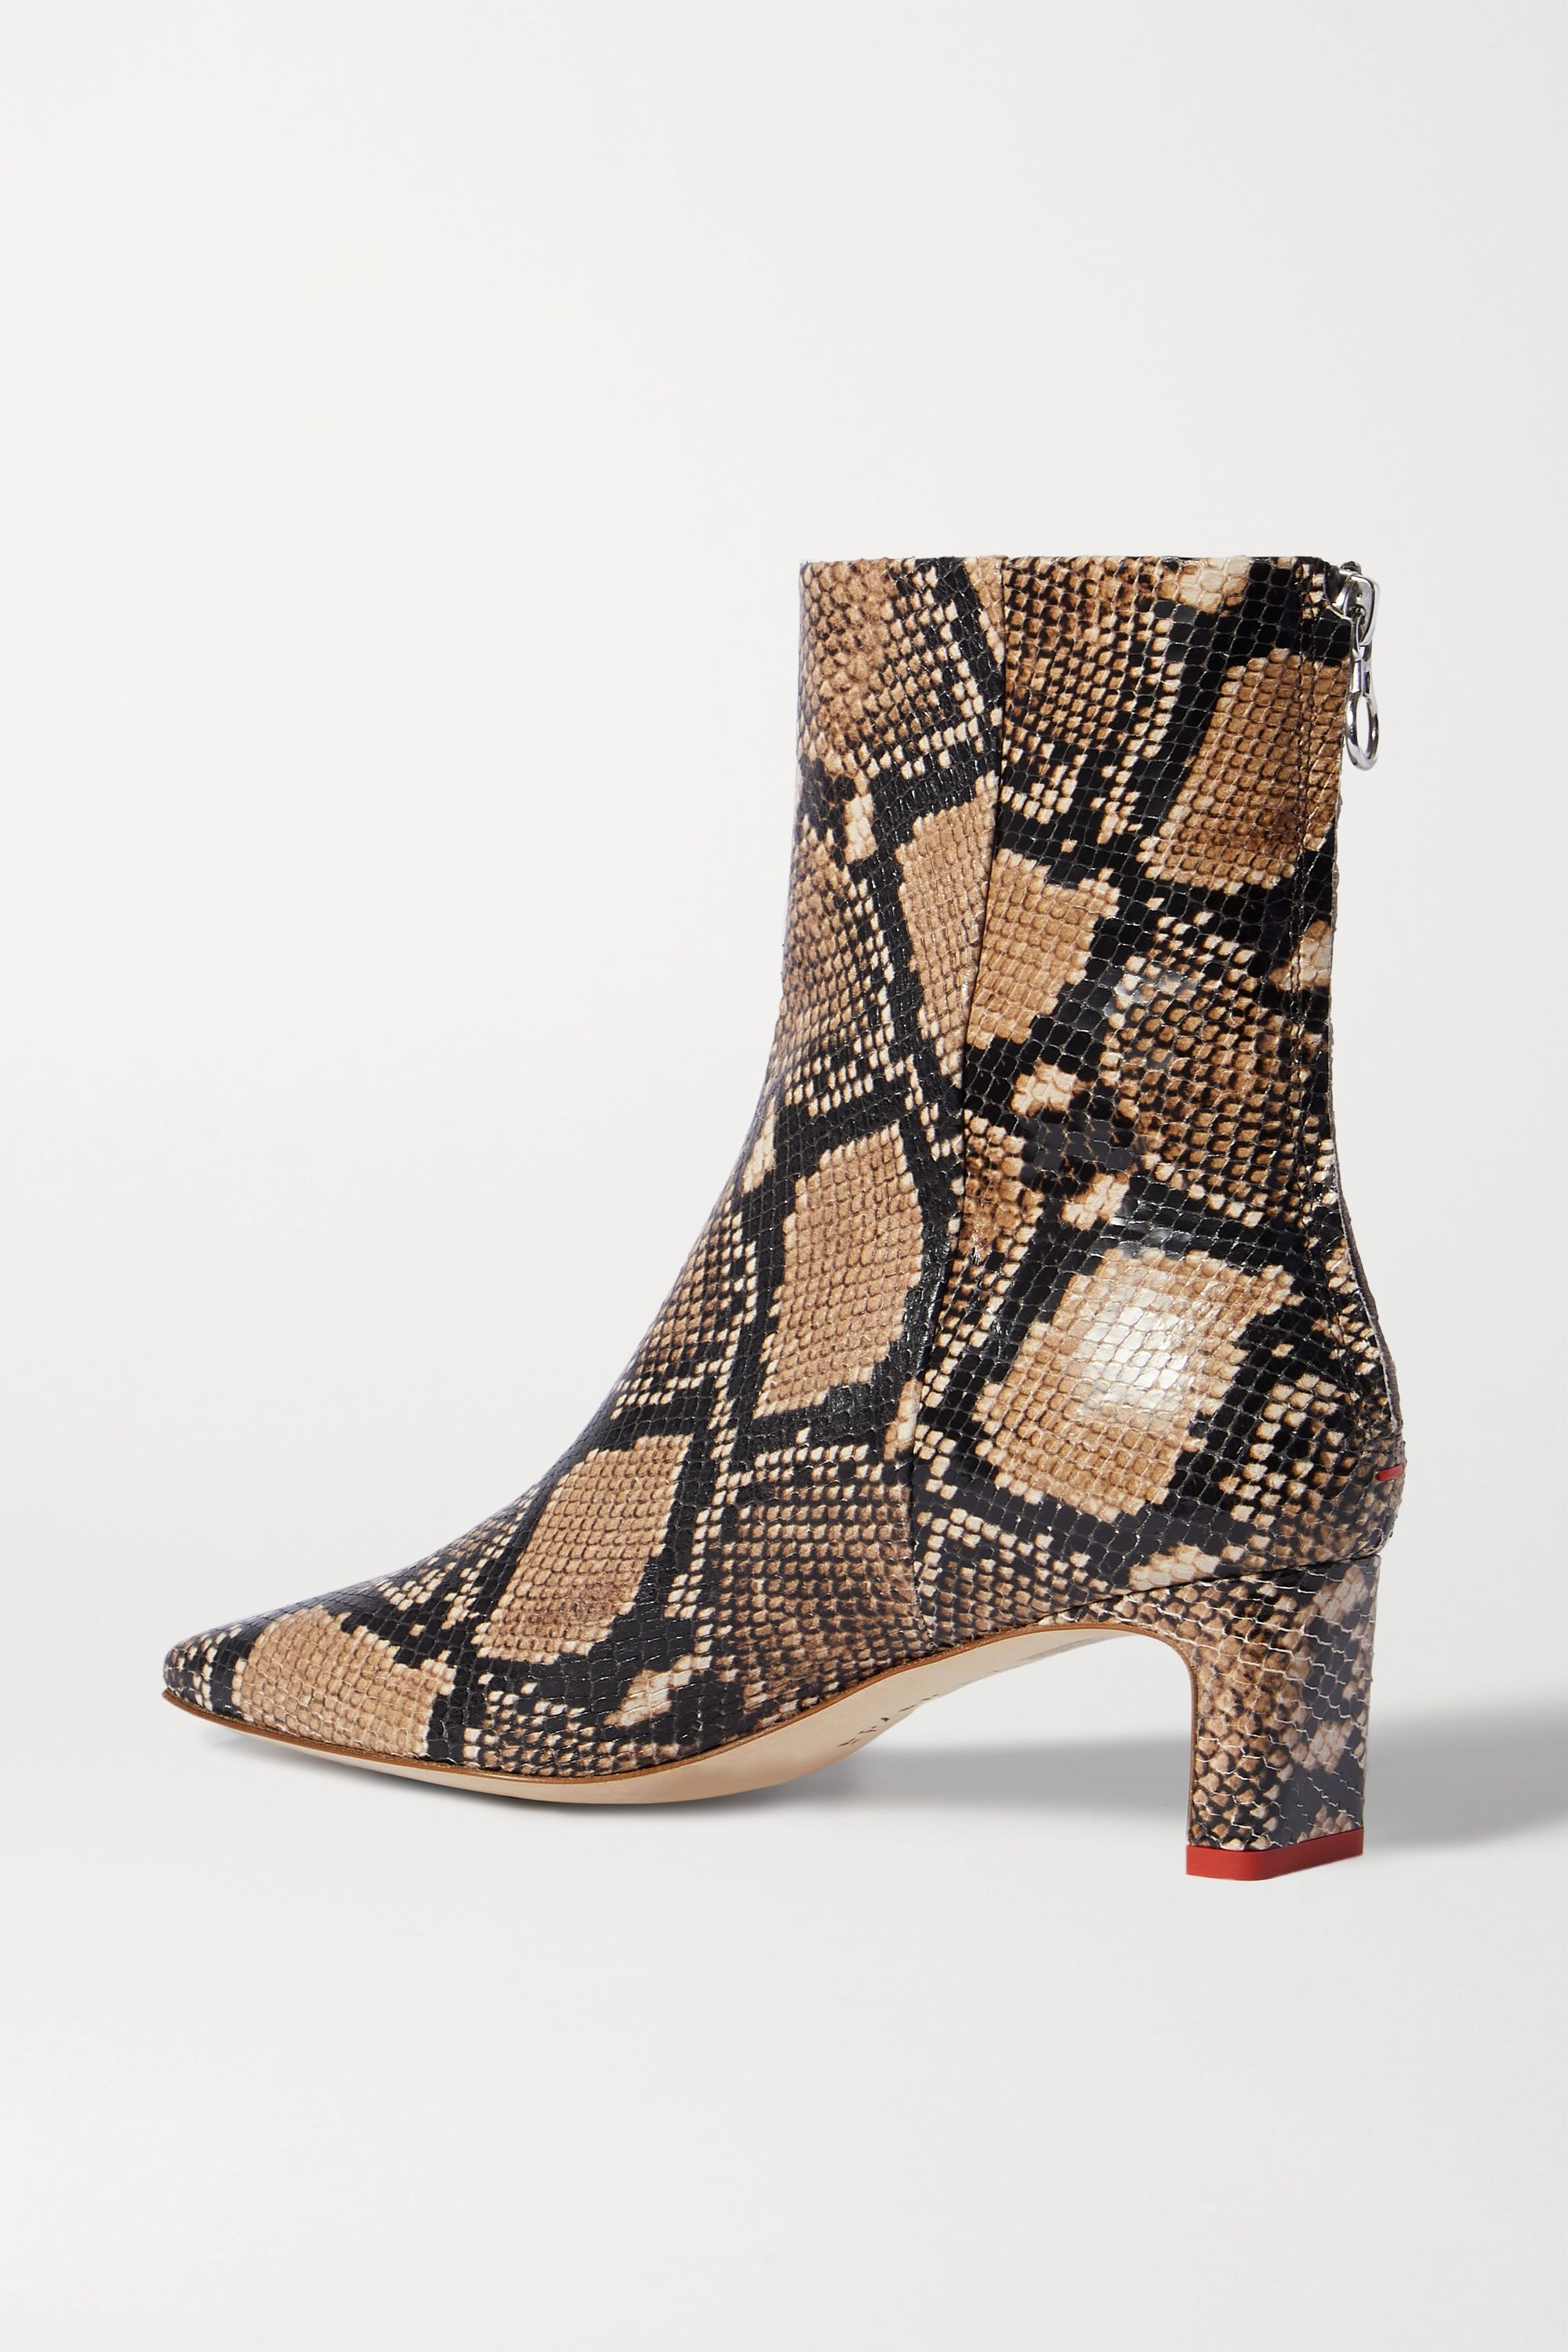 aeyde Ivy snake-effect leather ankle boots